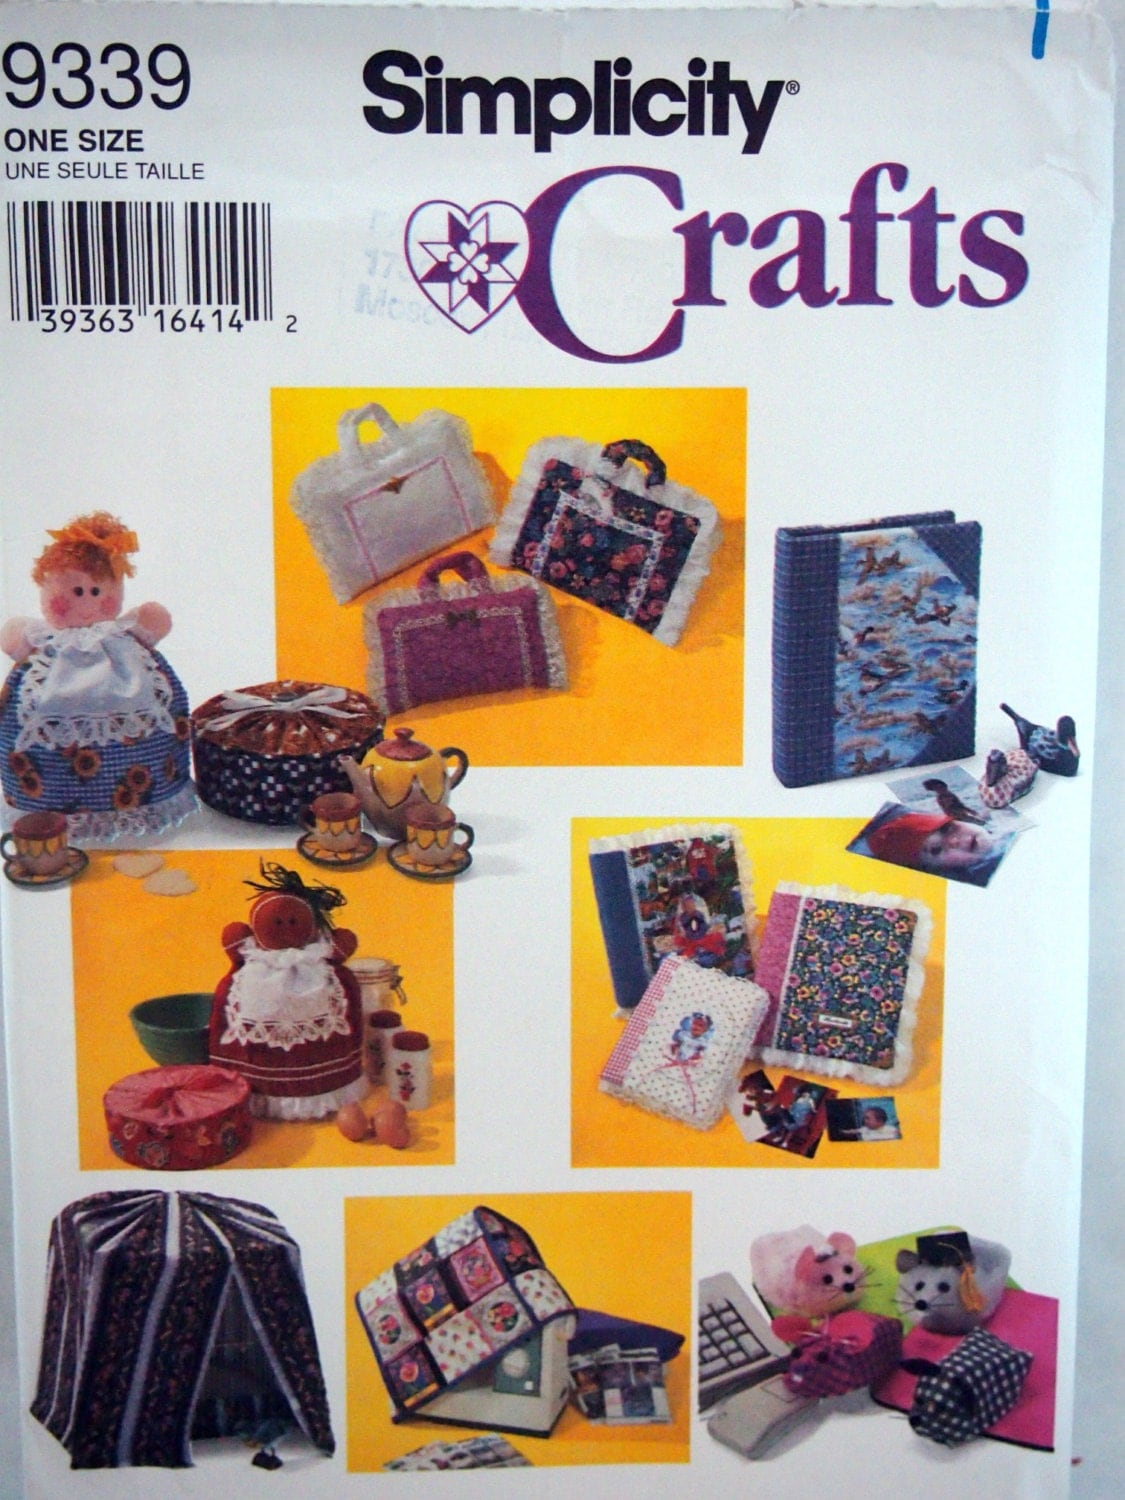 Book Cover Sewing Machines ~ Fabric covers simplicity crafts uncut sewing pattern